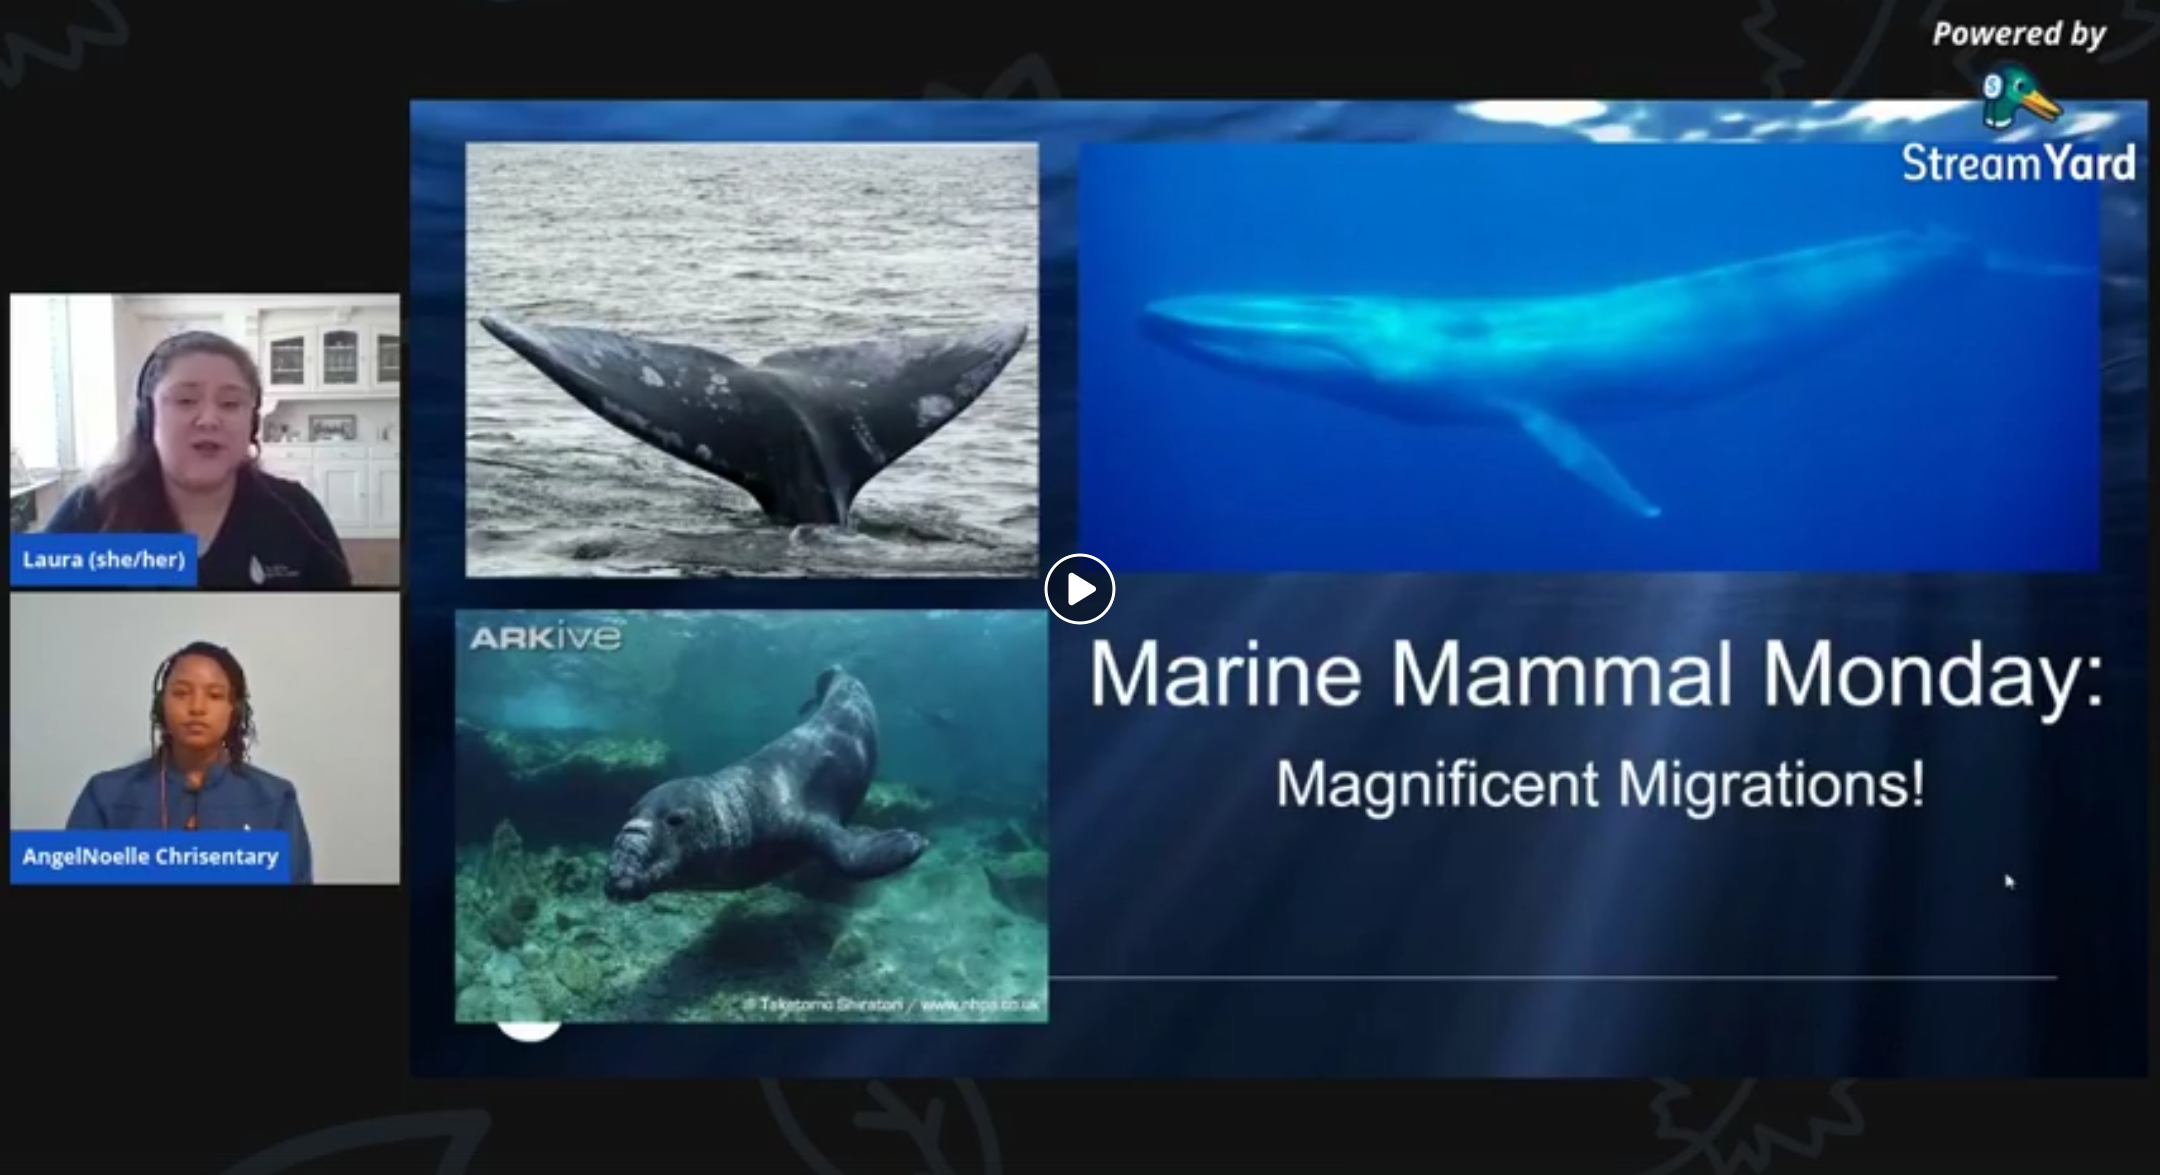 screenshot of Marine Mammal Monday: Magnificent Migrations video